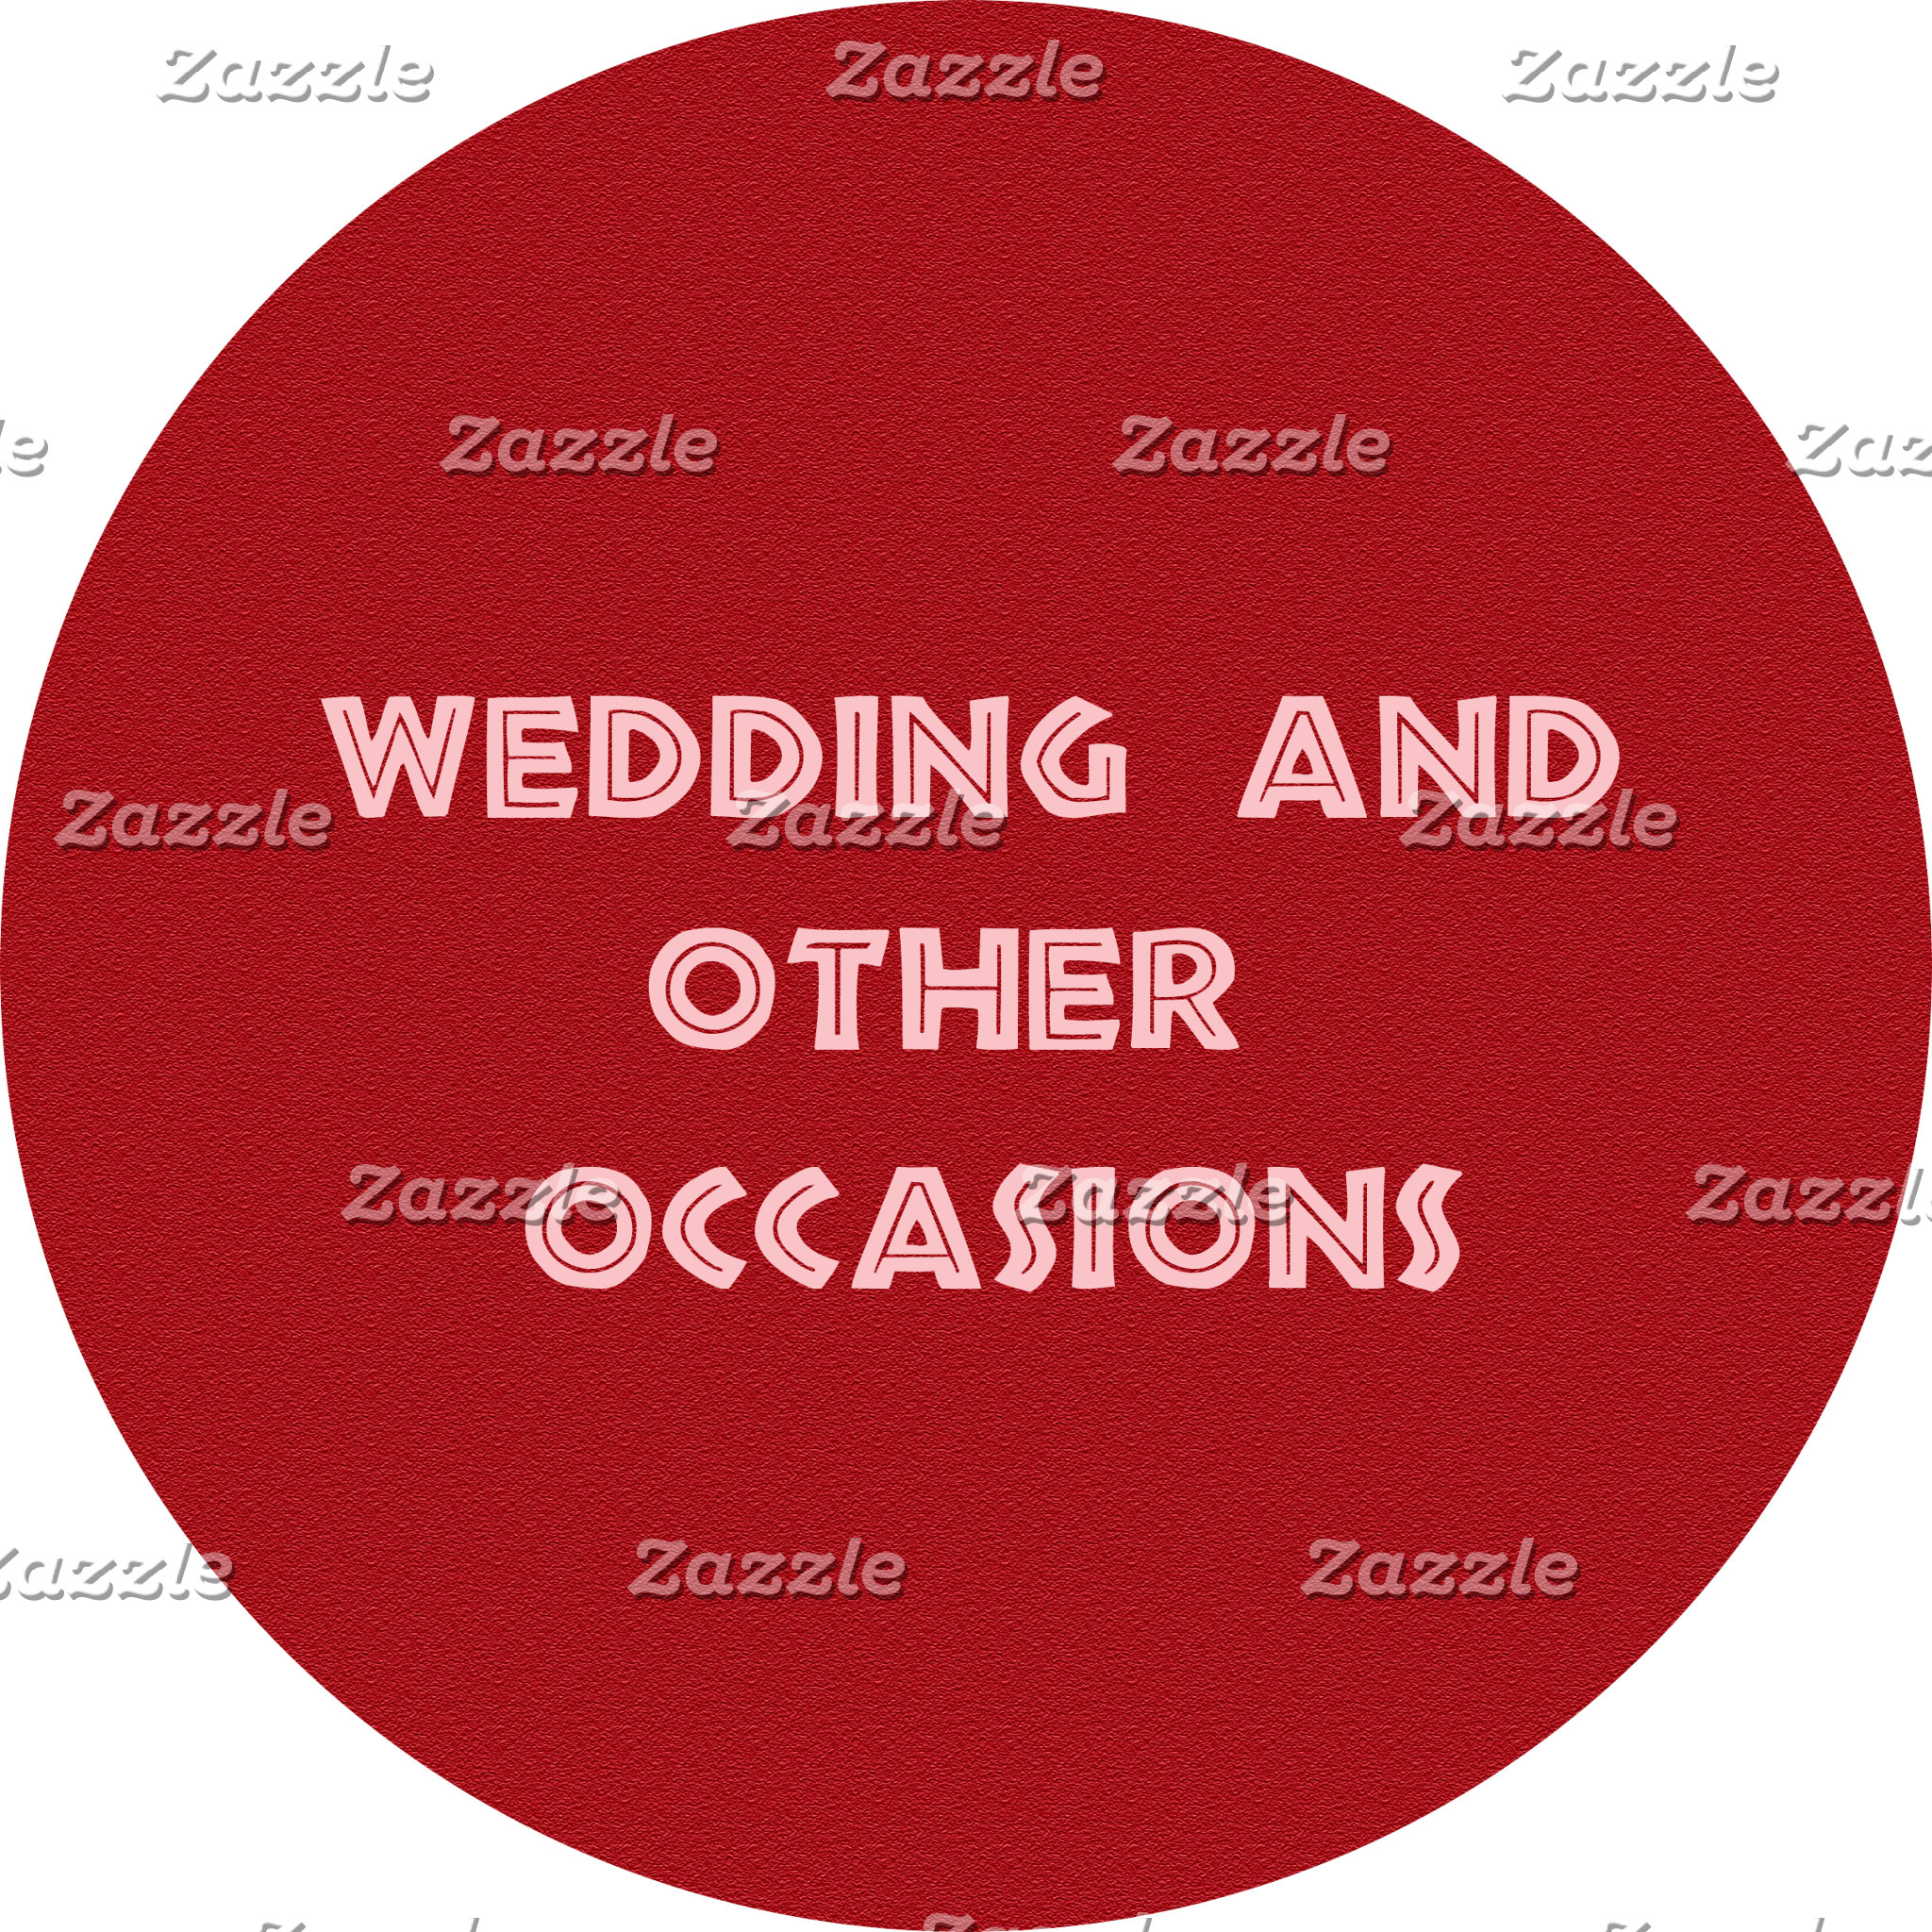 Wedding and other occasions